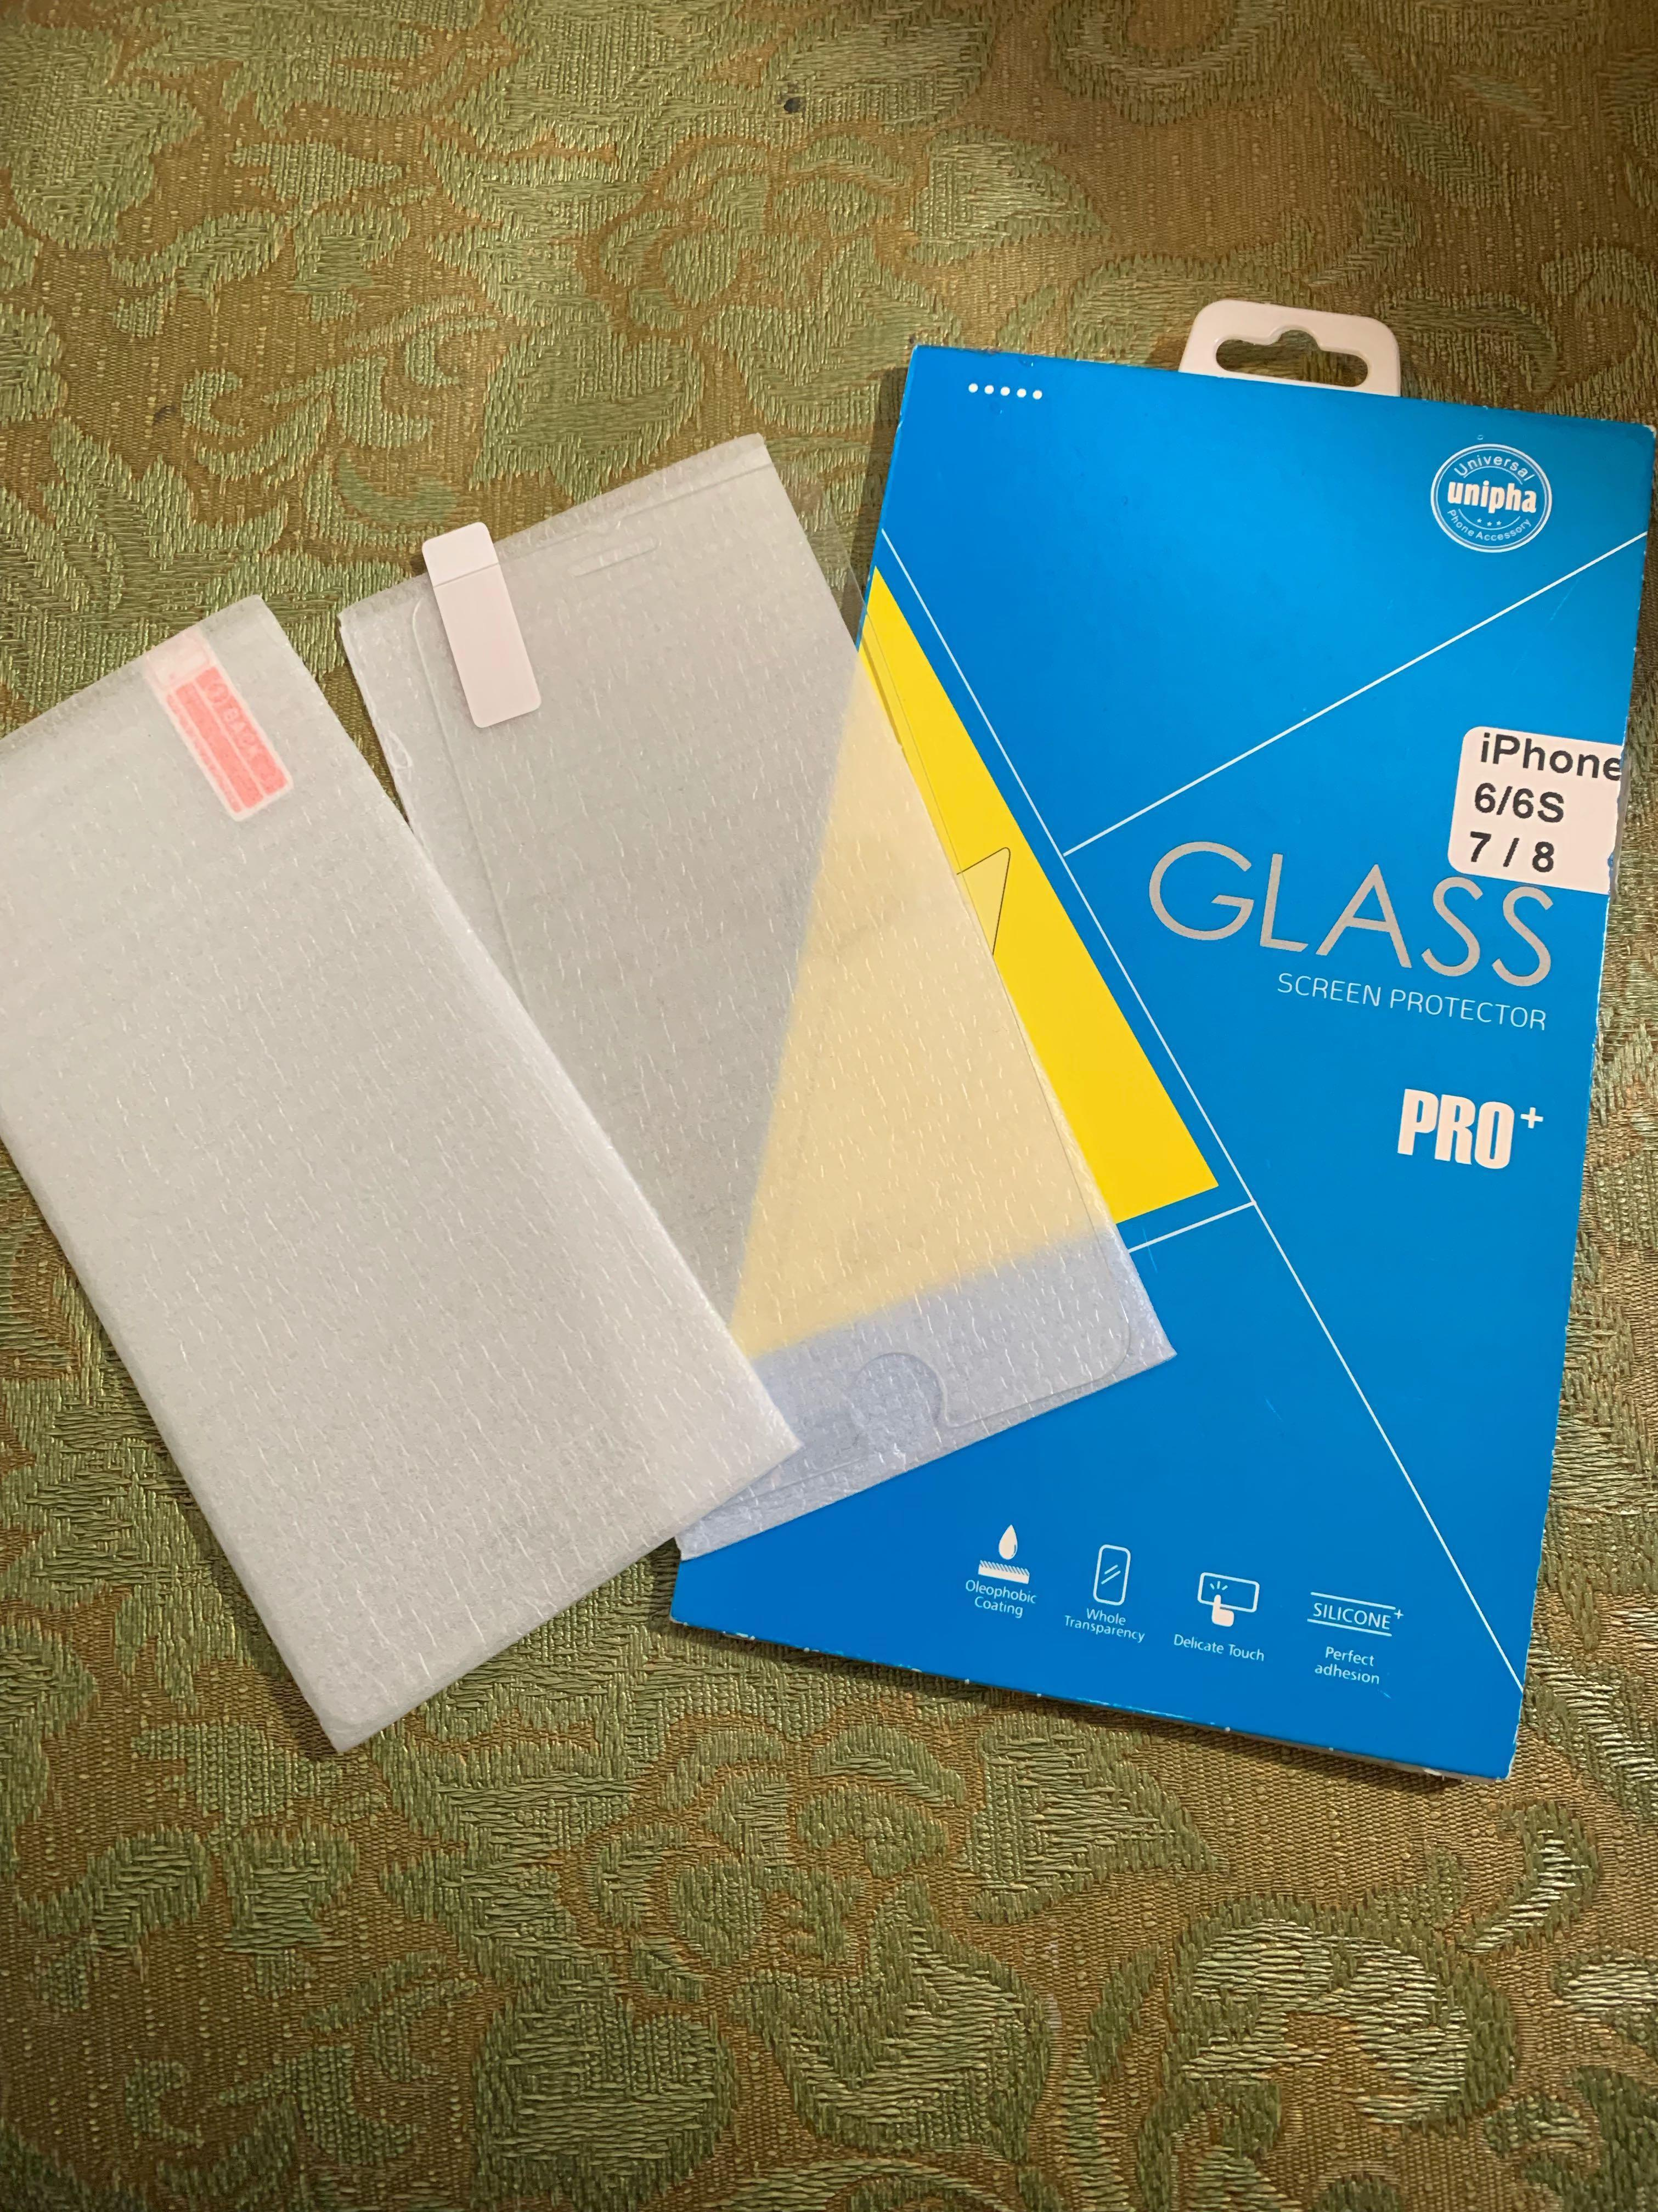 Glass protector for iphone6/6s